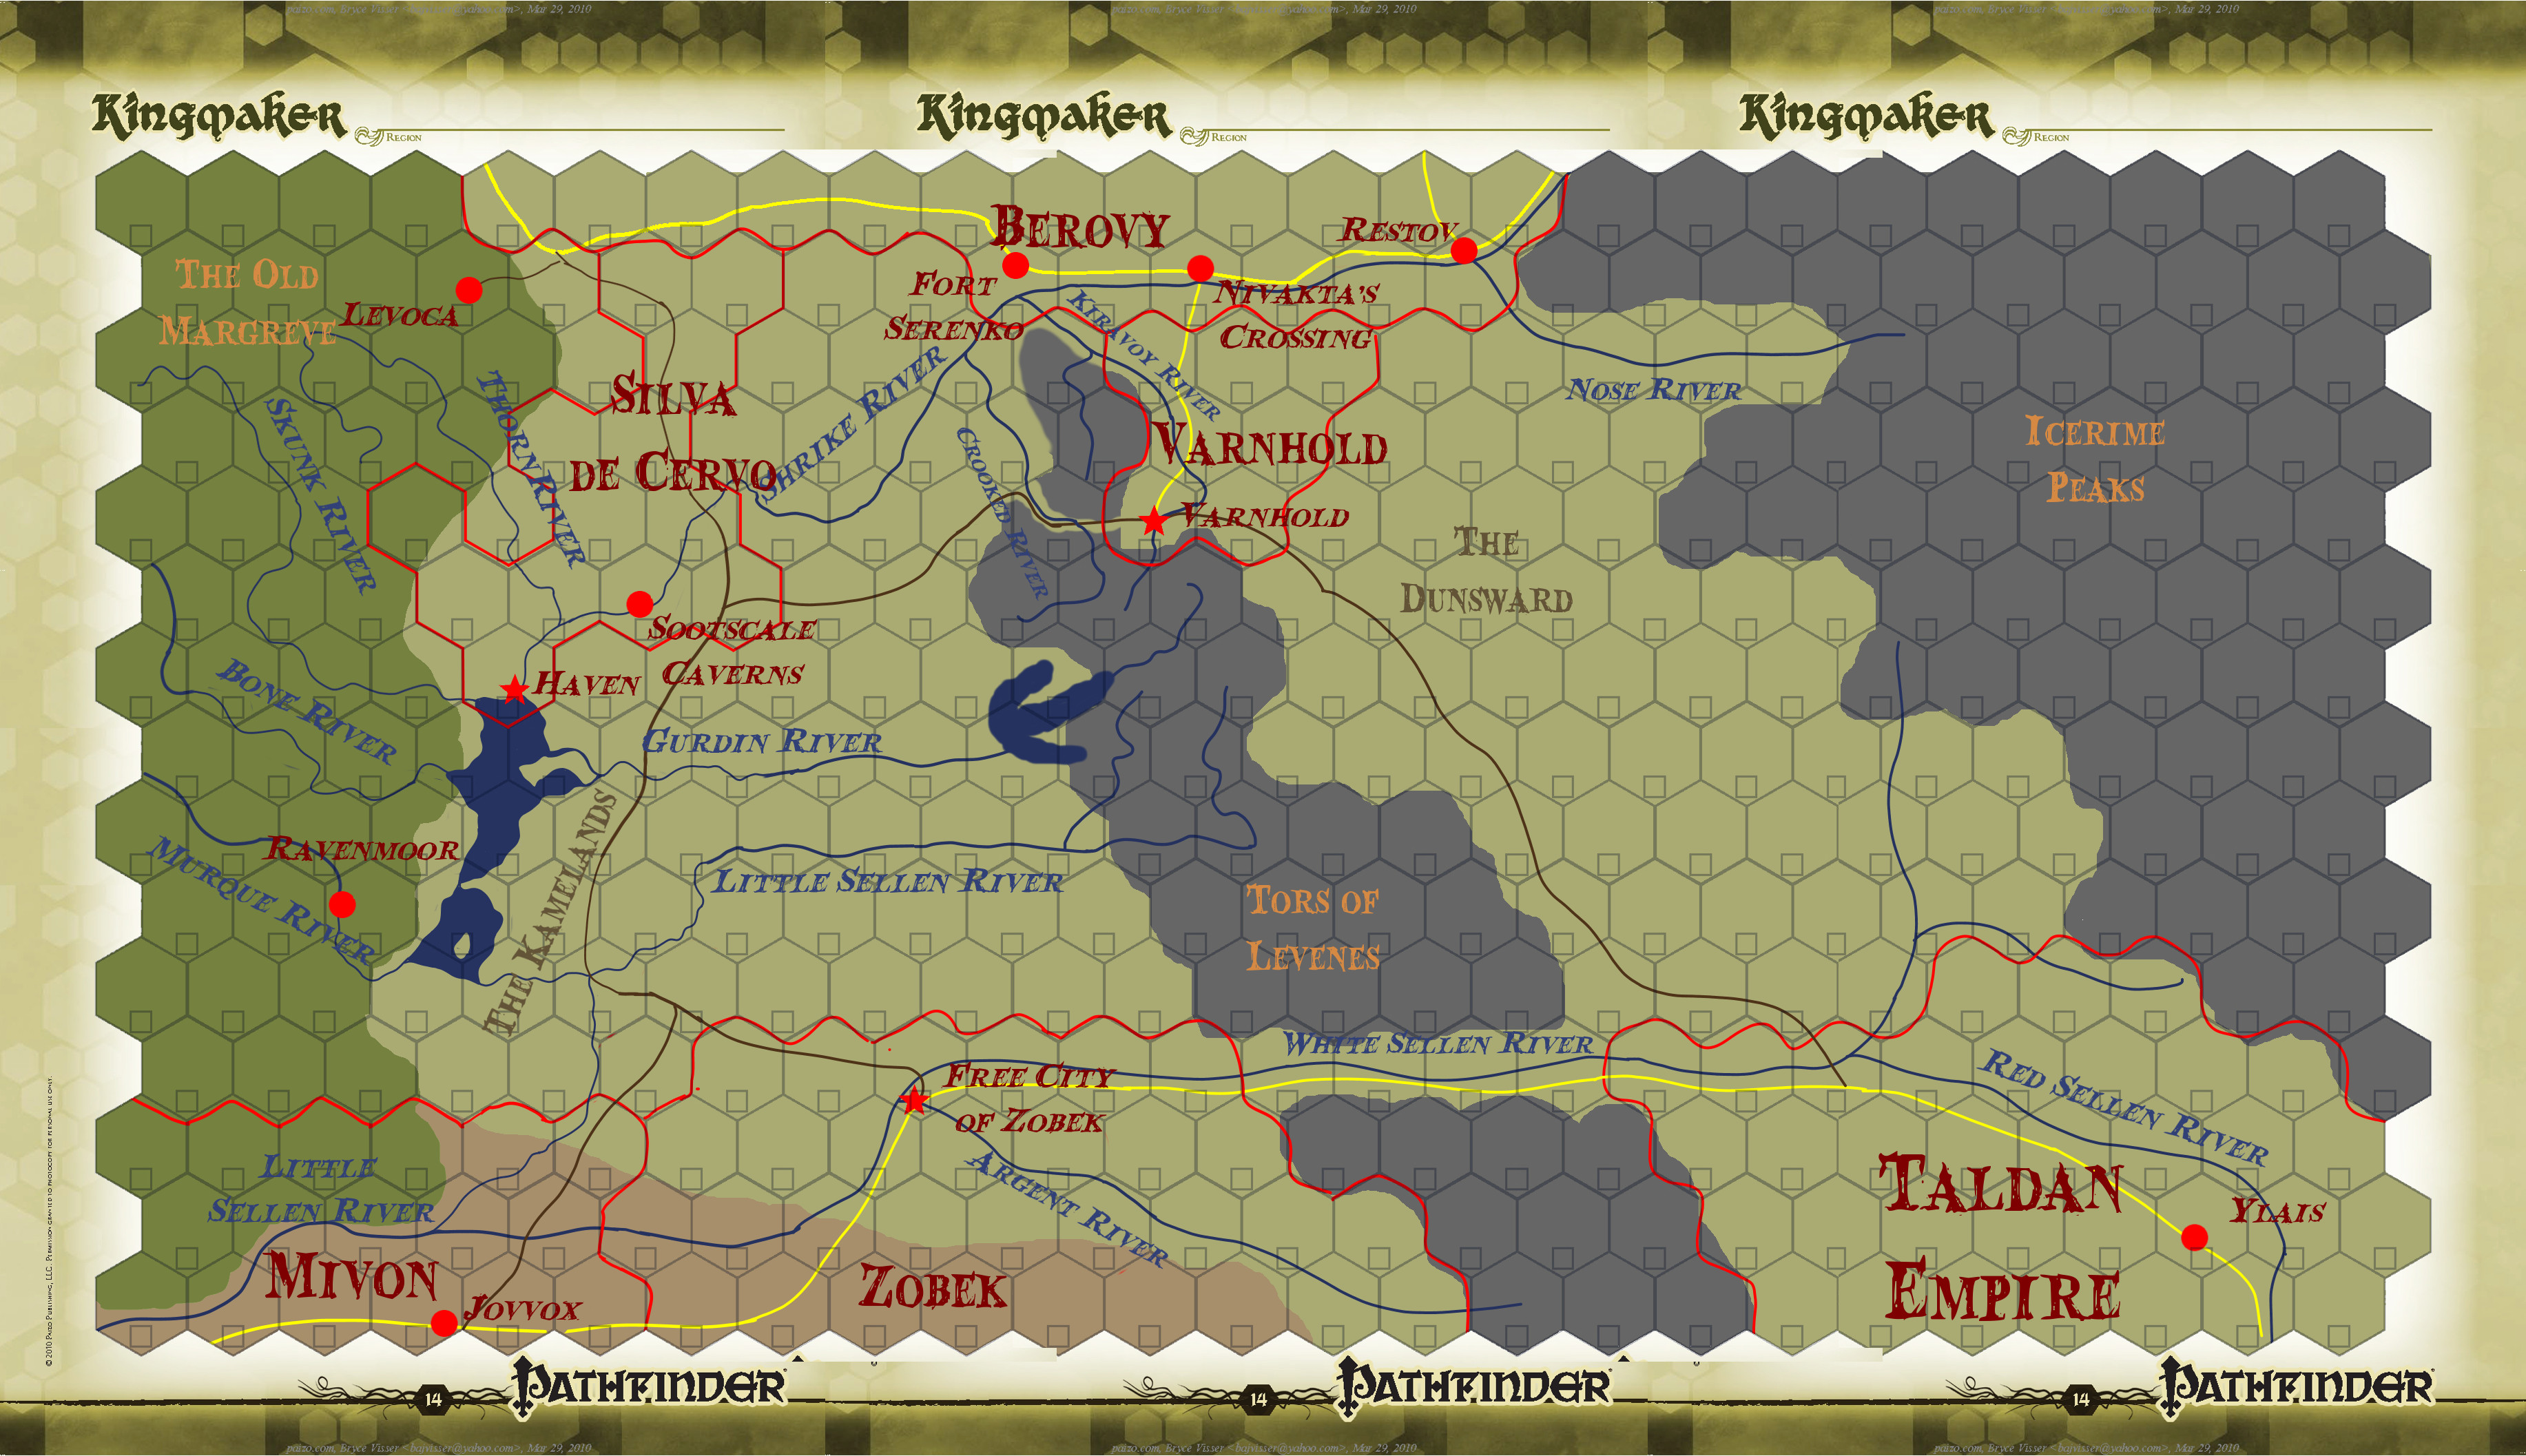 kingmaker-greenbelt_and_highlands2.jpg